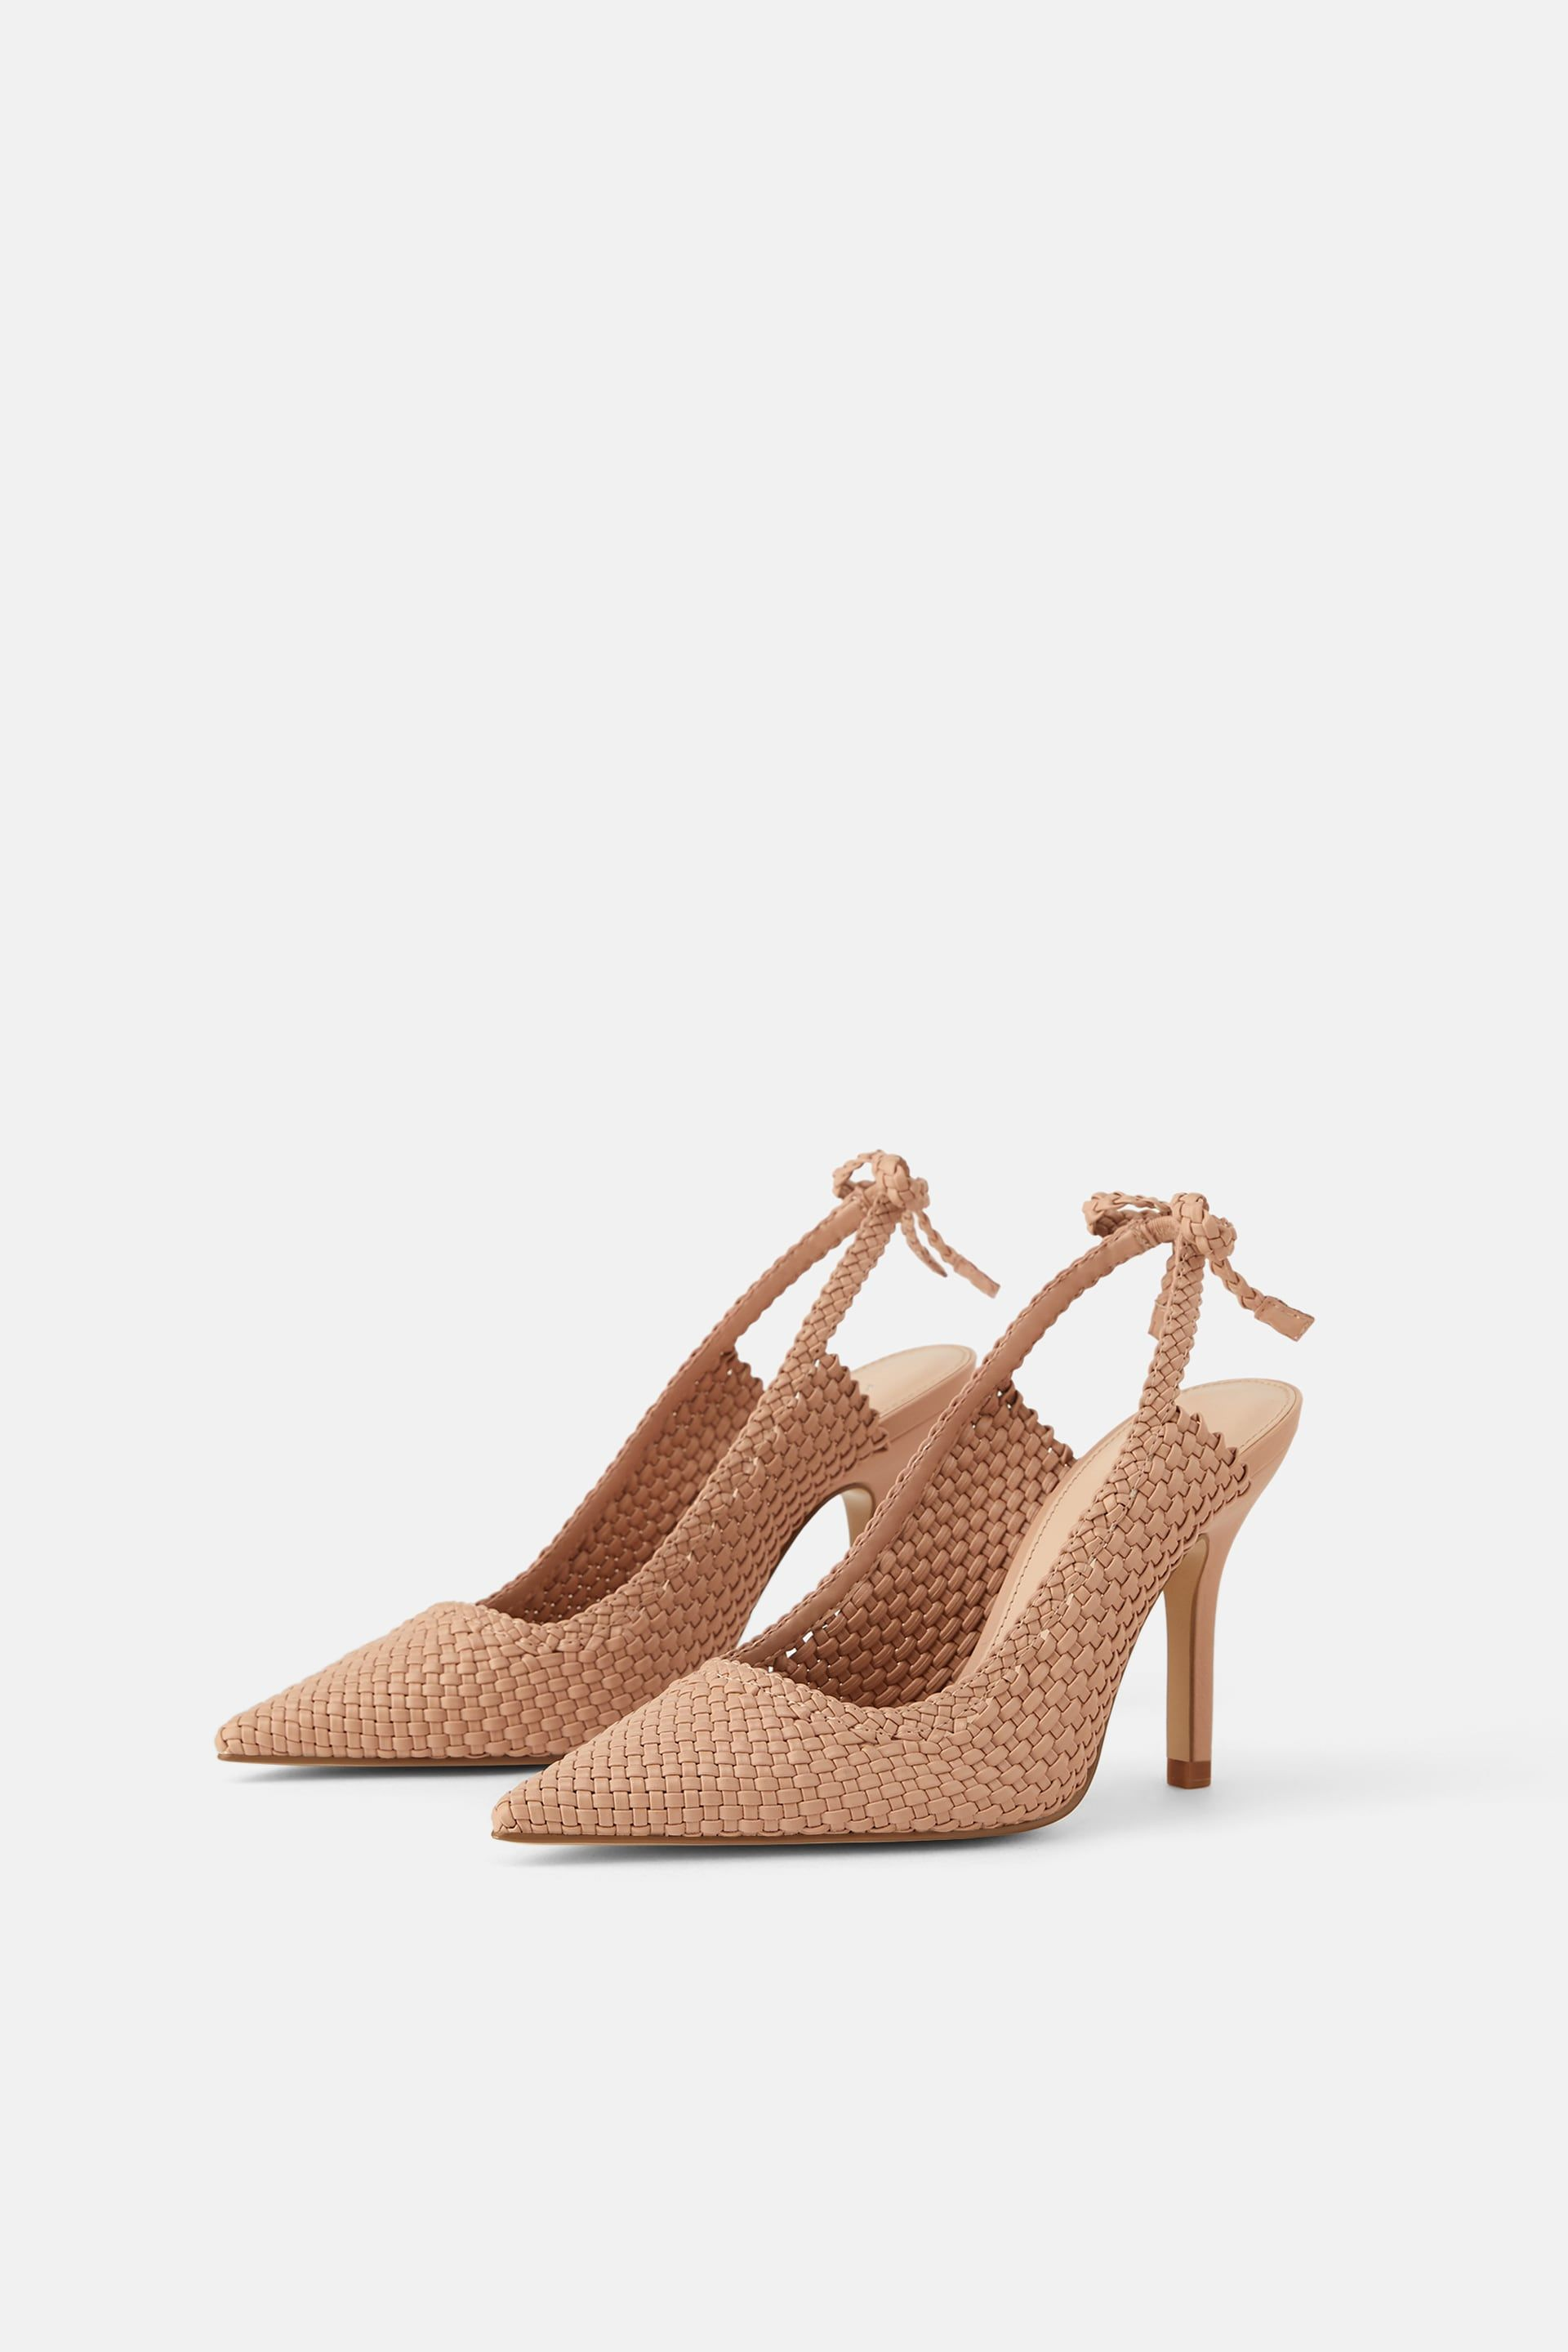 01975a524cd Woven slingback heels with ties in 2019 | clothing | Heels ...